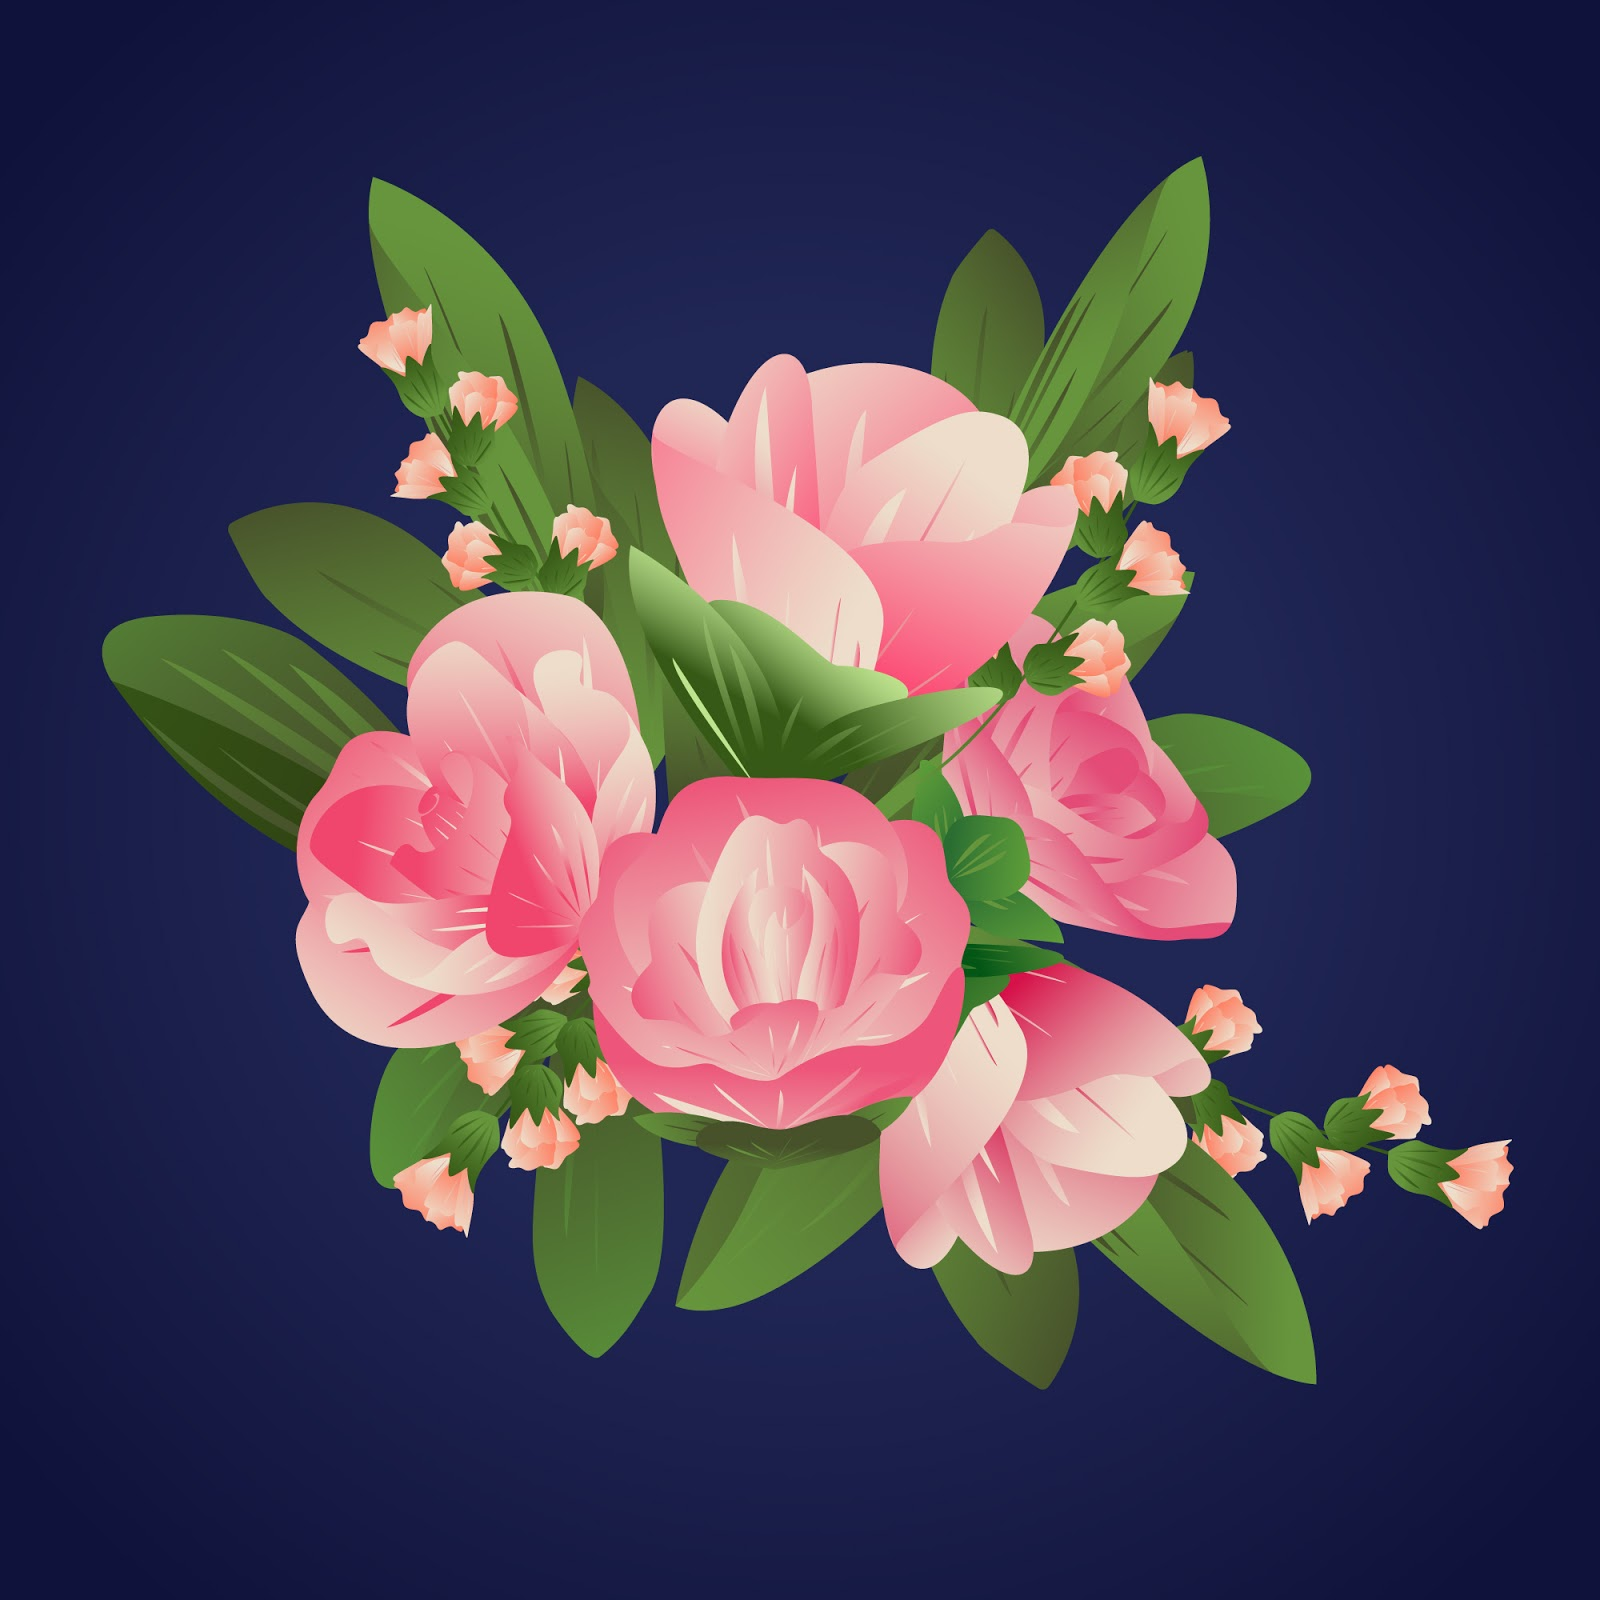 Colorful Gradient Paper Style Roses Free Download Vector CDR, AI, EPS and PNG Formats